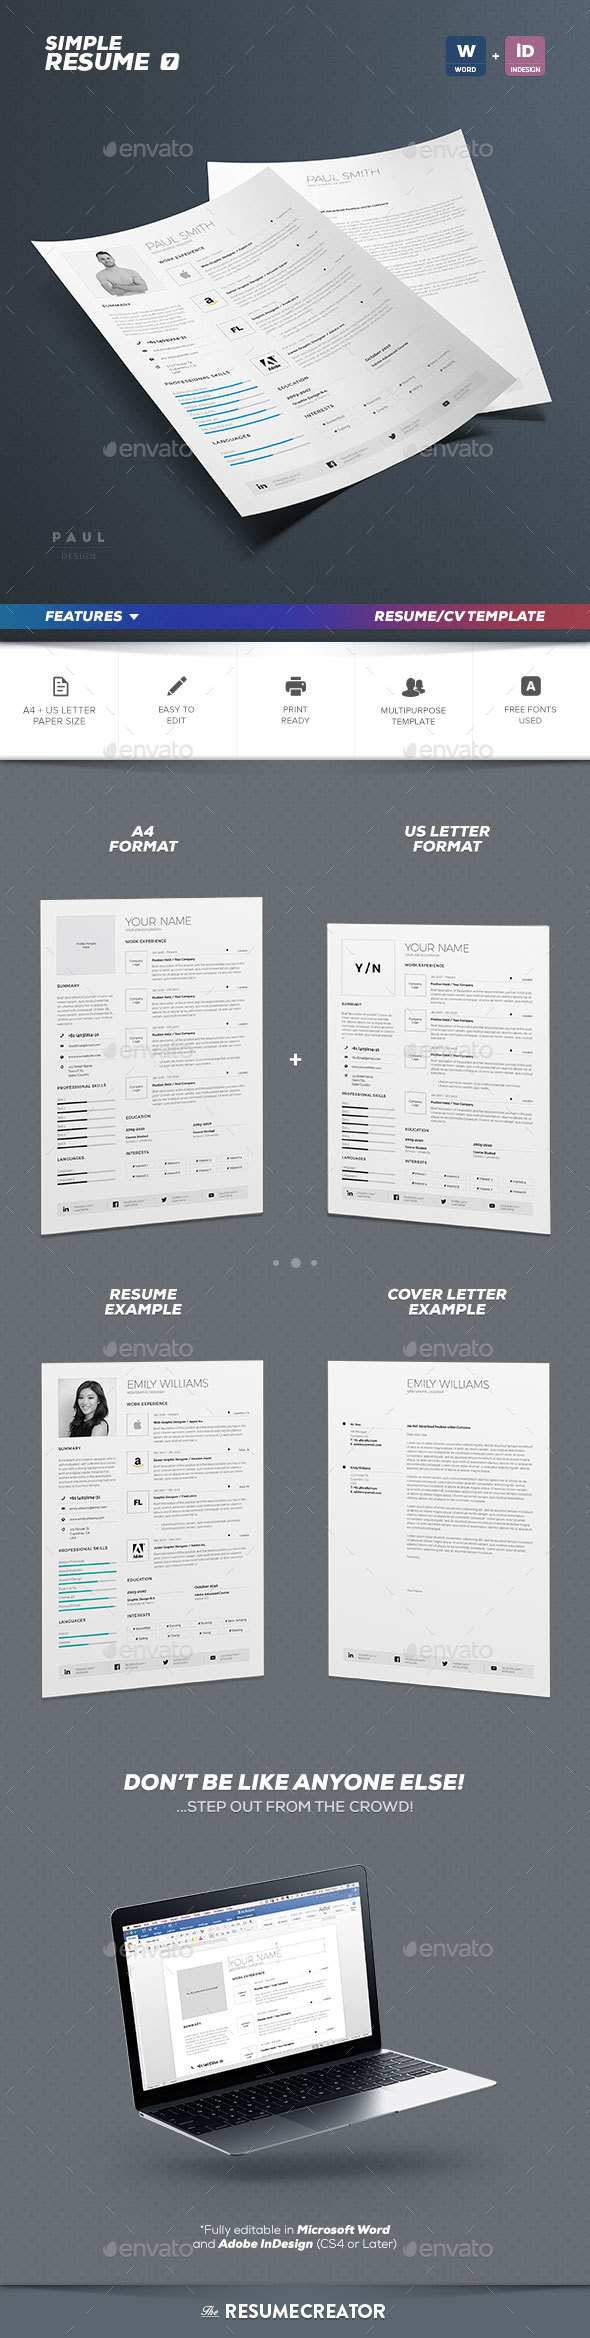 indesign resume template graphics designs templates - Resume Templates Indesign